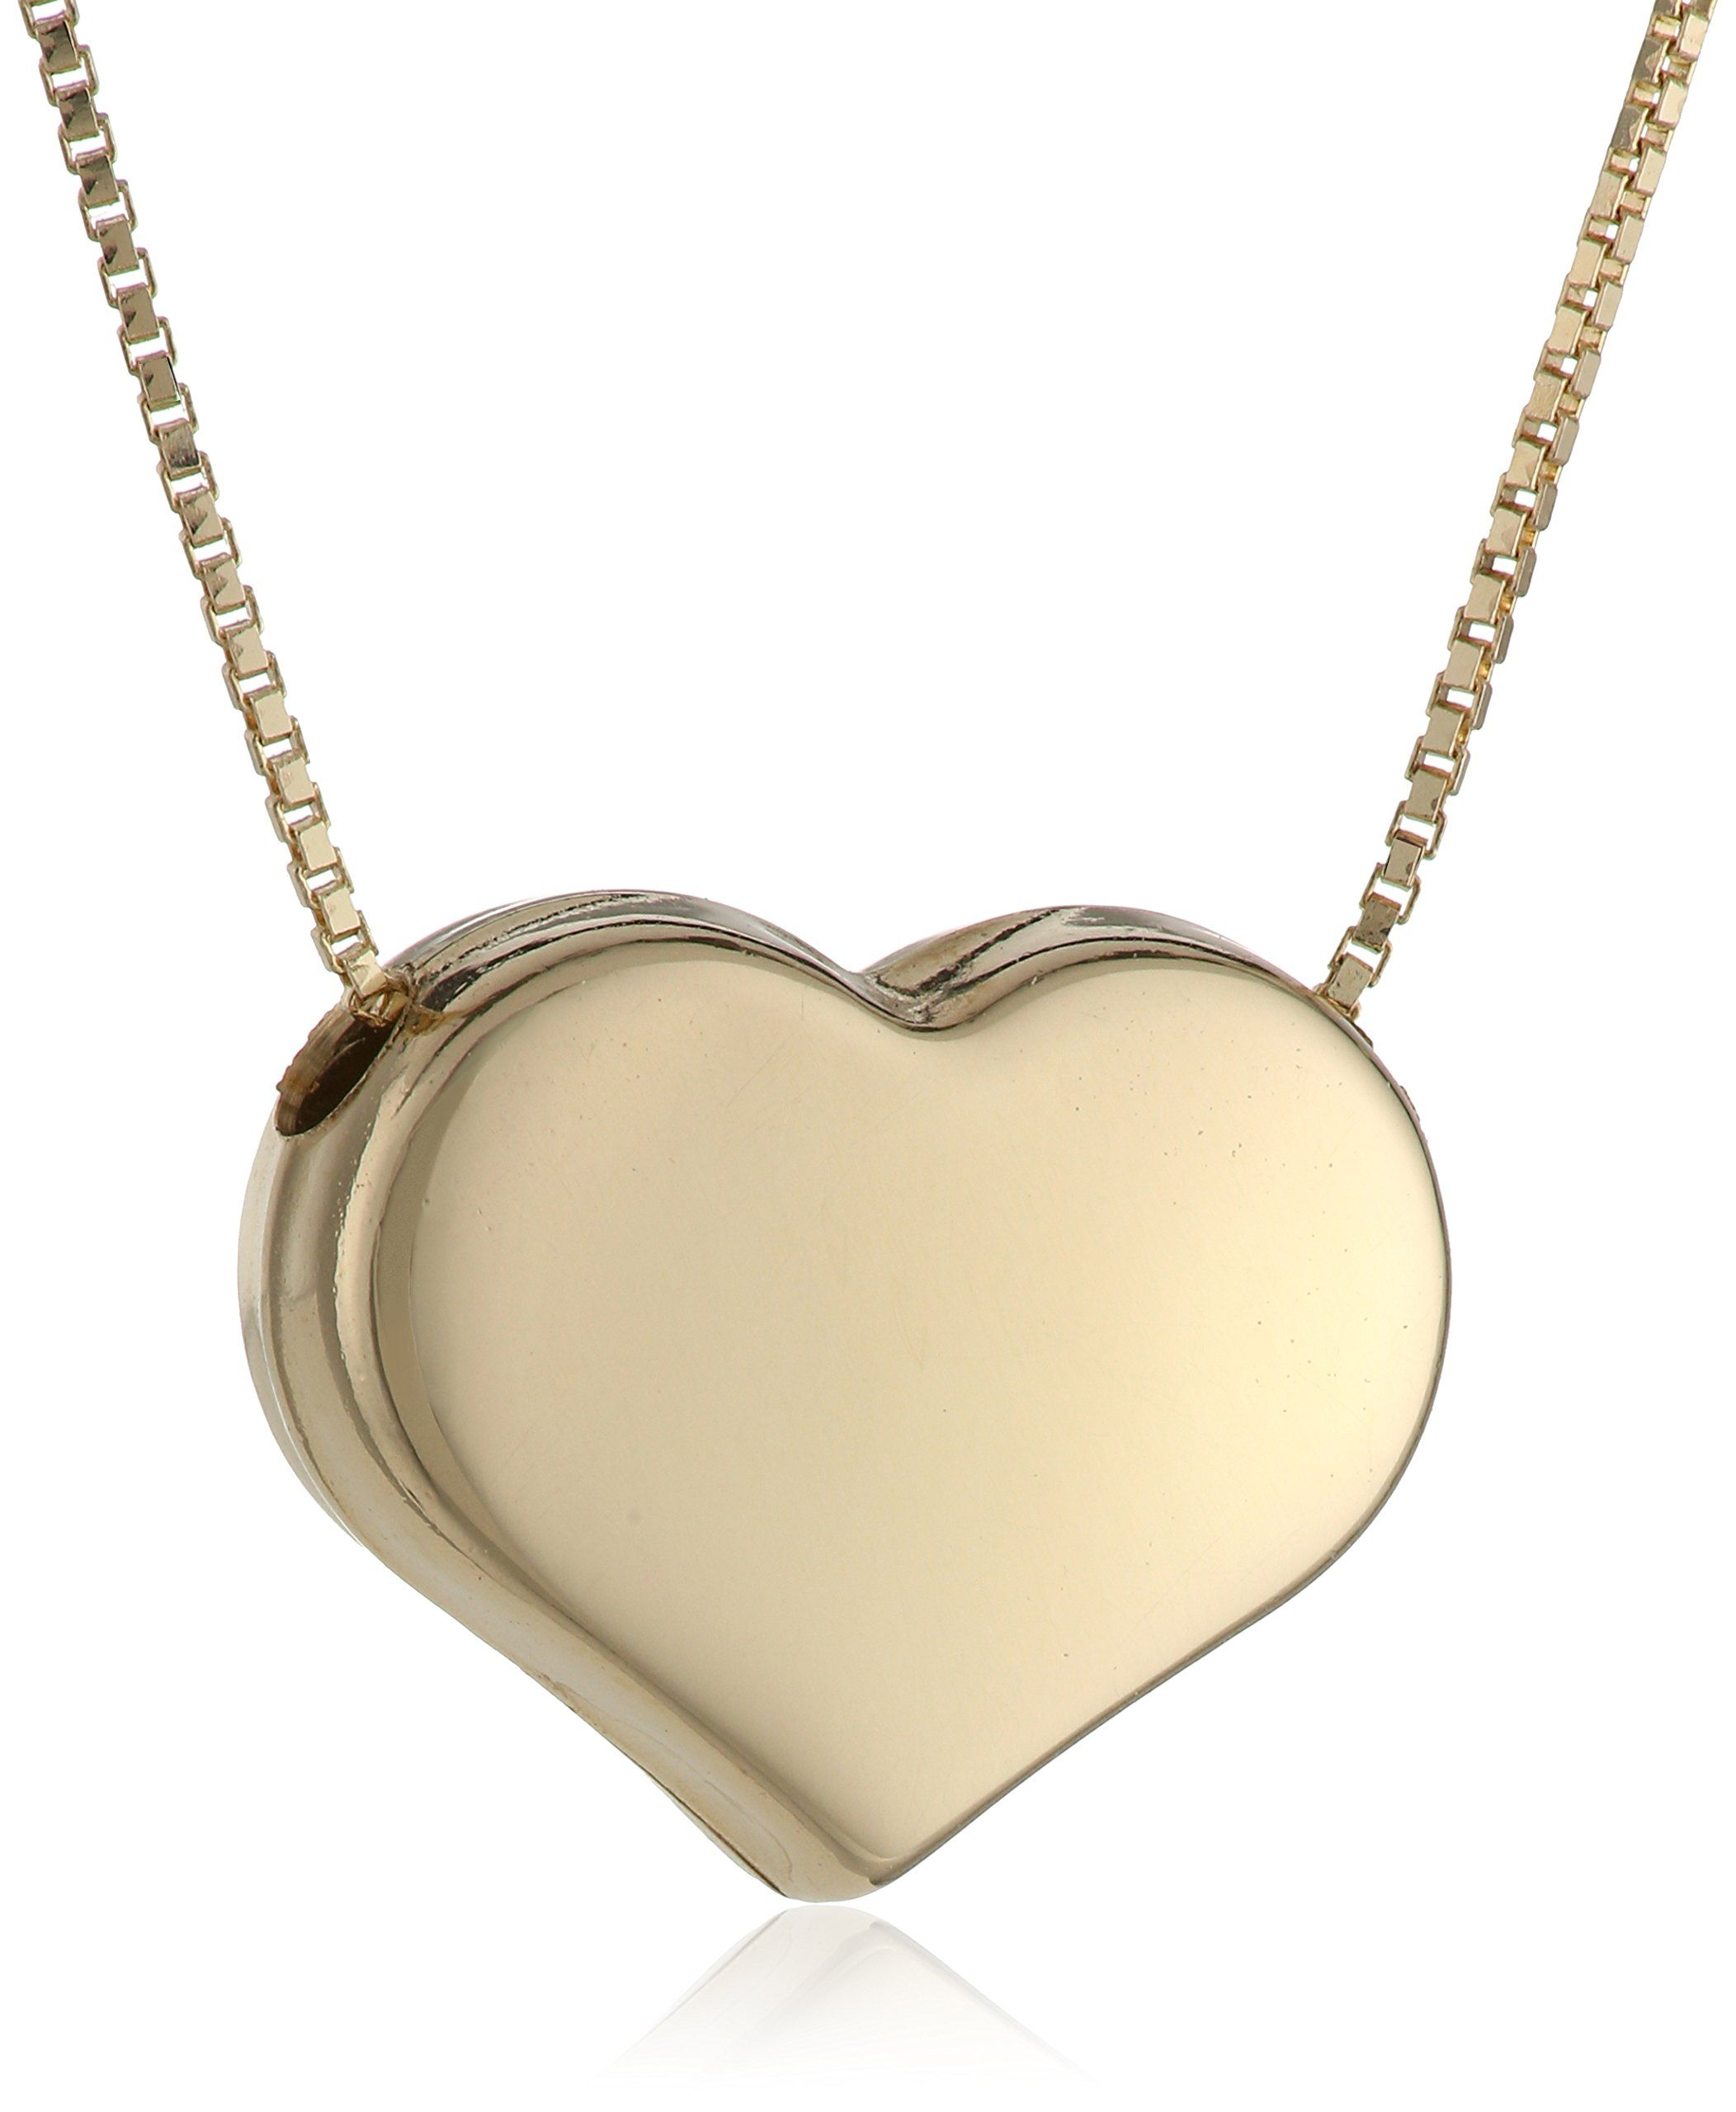 gold chains heart necklace anatomical silver charm